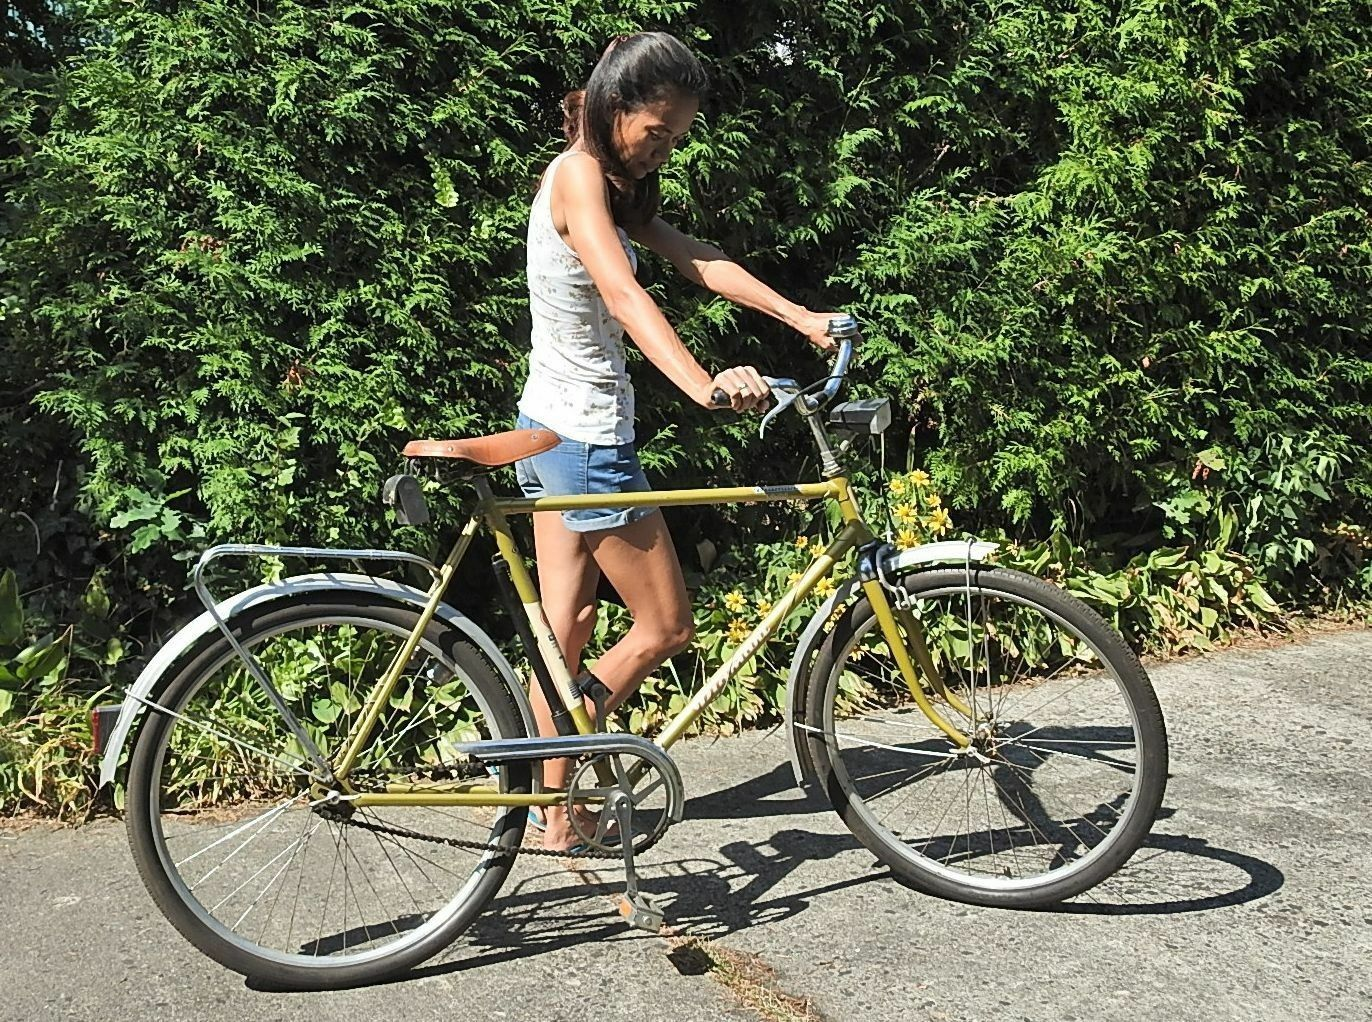 Classic 60 70 80's East German GDR Classic Bicycles Rare DDR Foreign Unusual